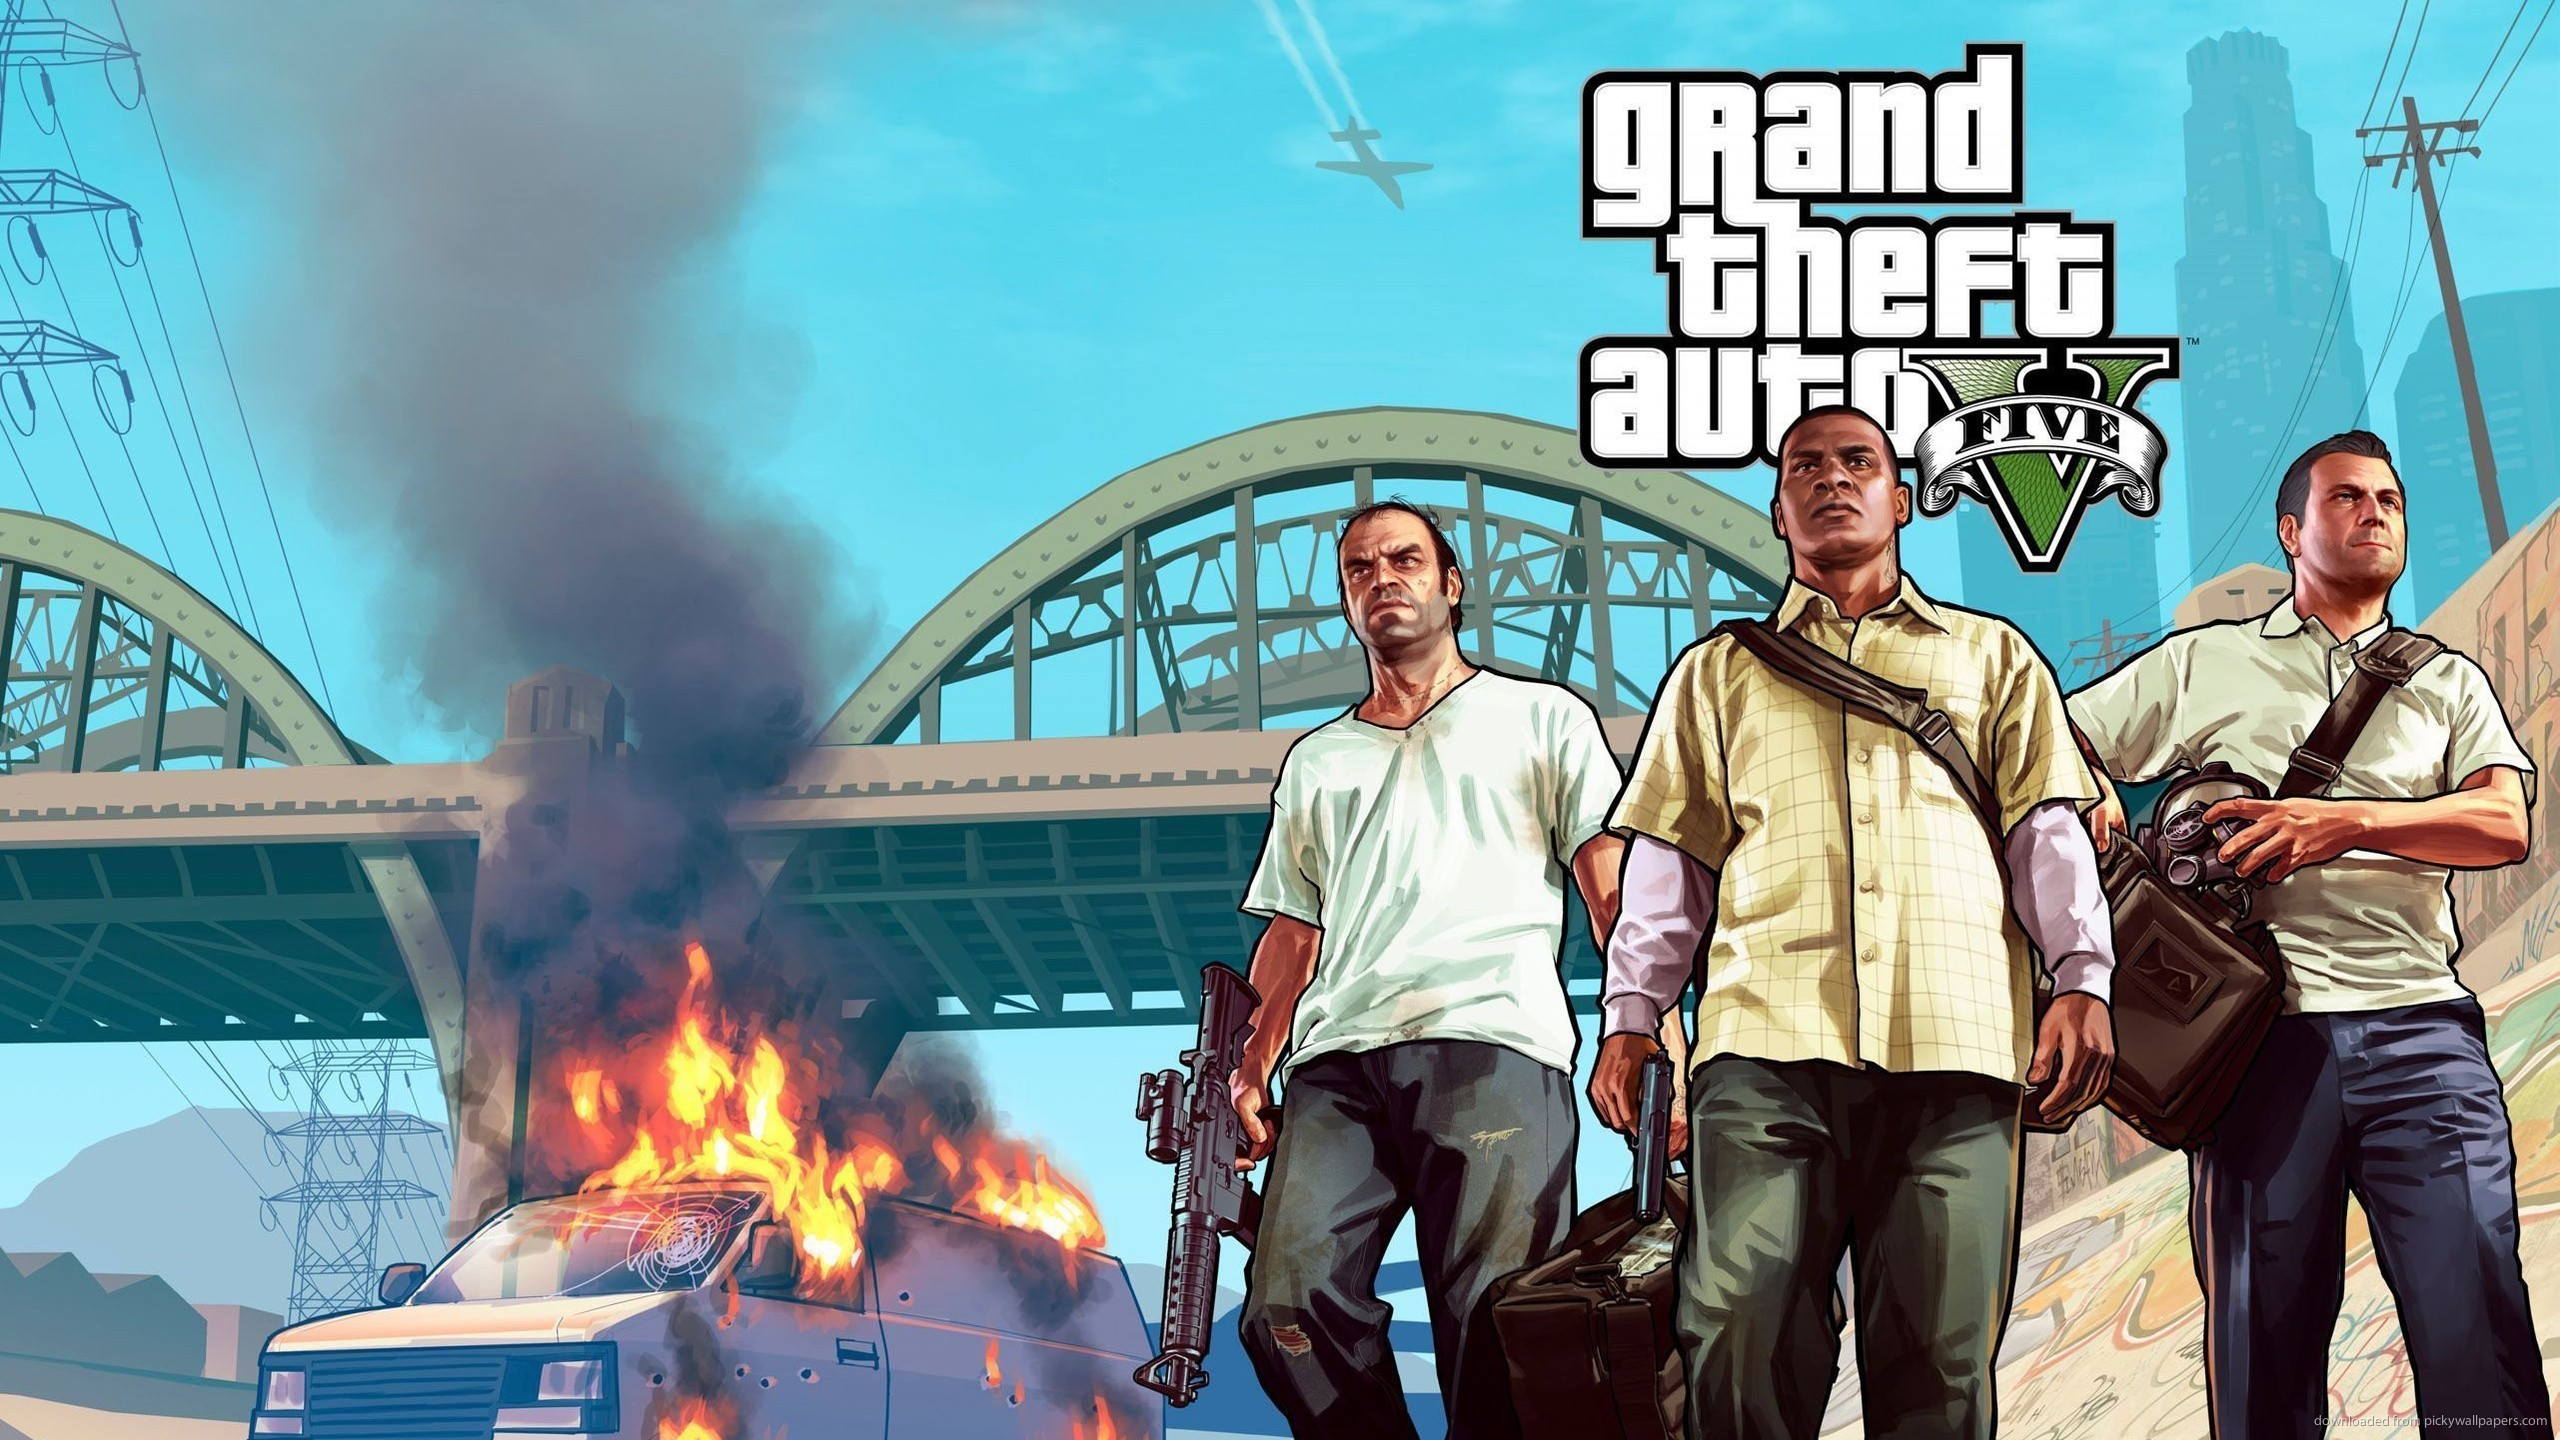 gta 5 wallpaper 2560x1440 (89+ images)